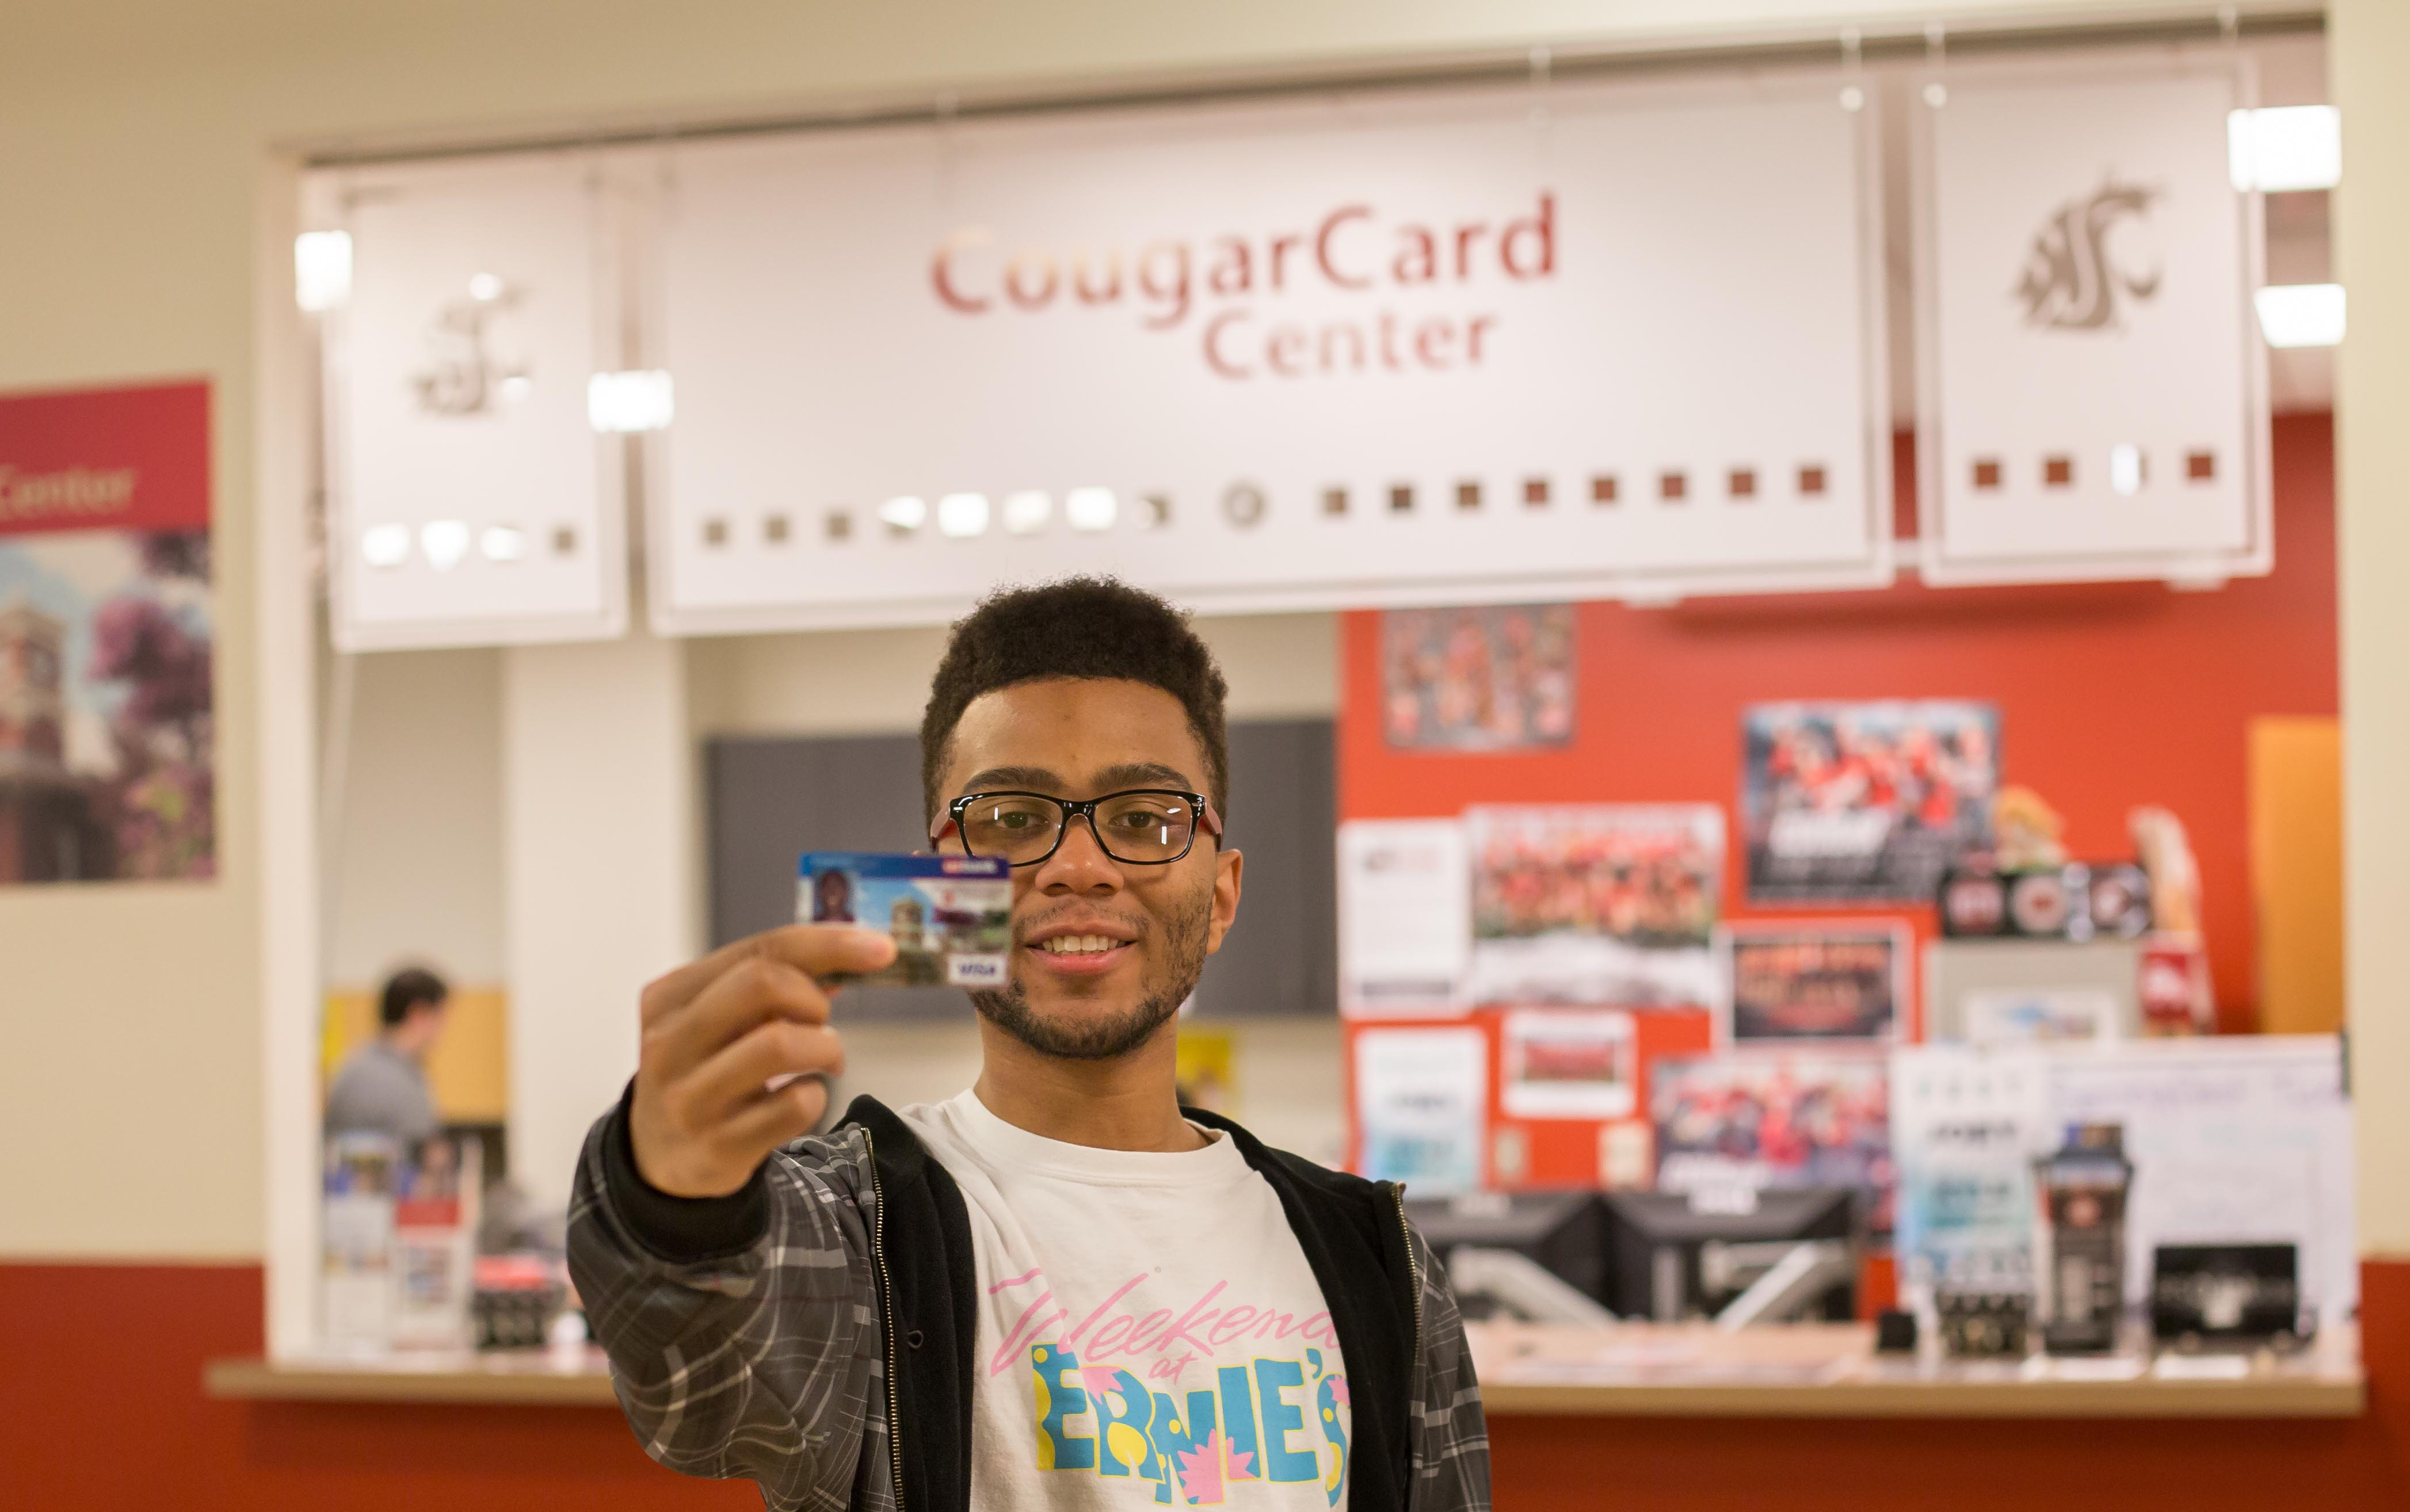 Student holding a CougarCard facing the camera